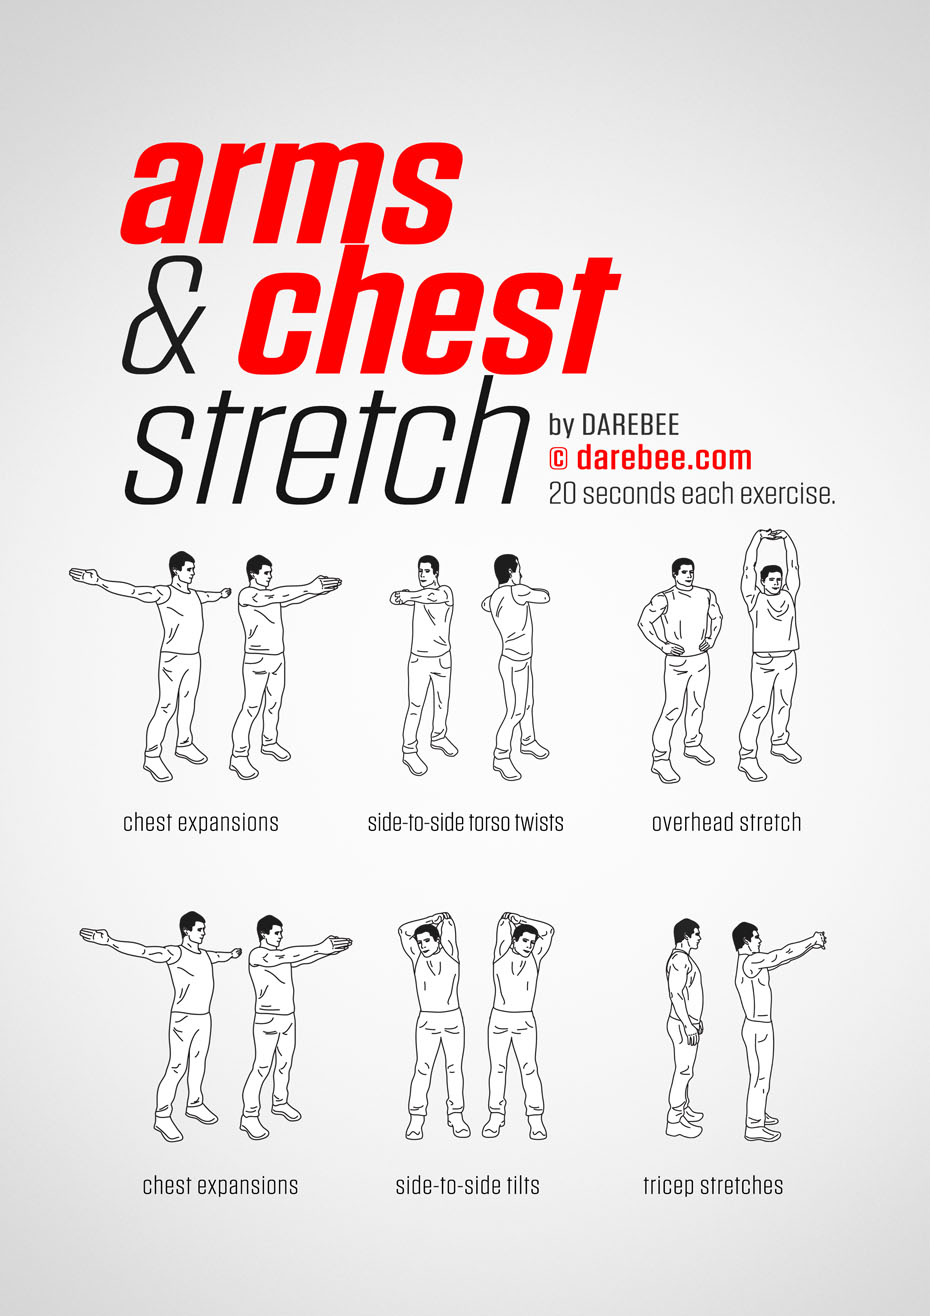 Arms Chest Workout